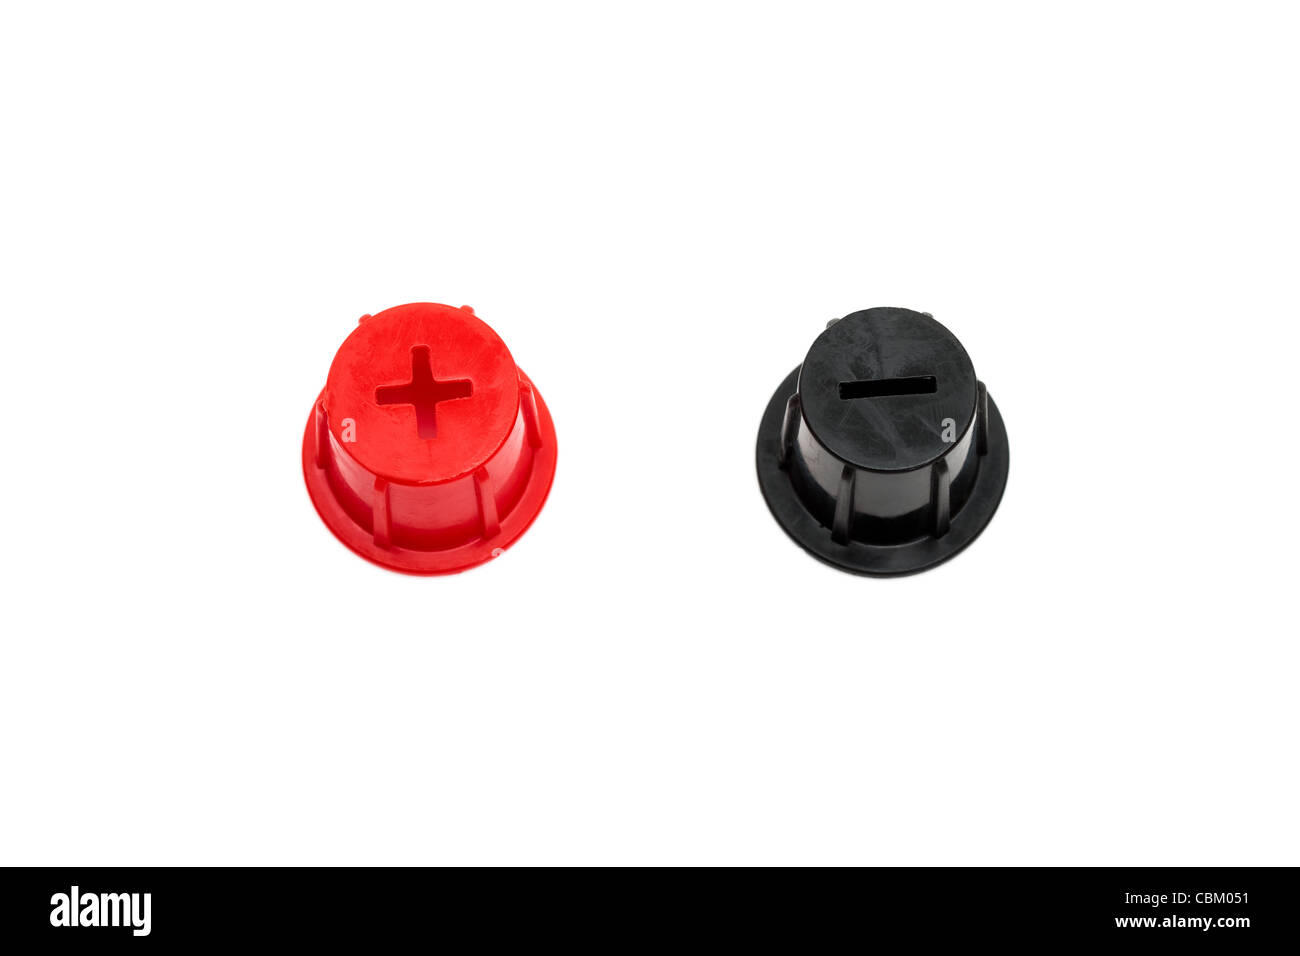 Battery Red positive and Black negative Stock Photo: 41621133 - Alamy